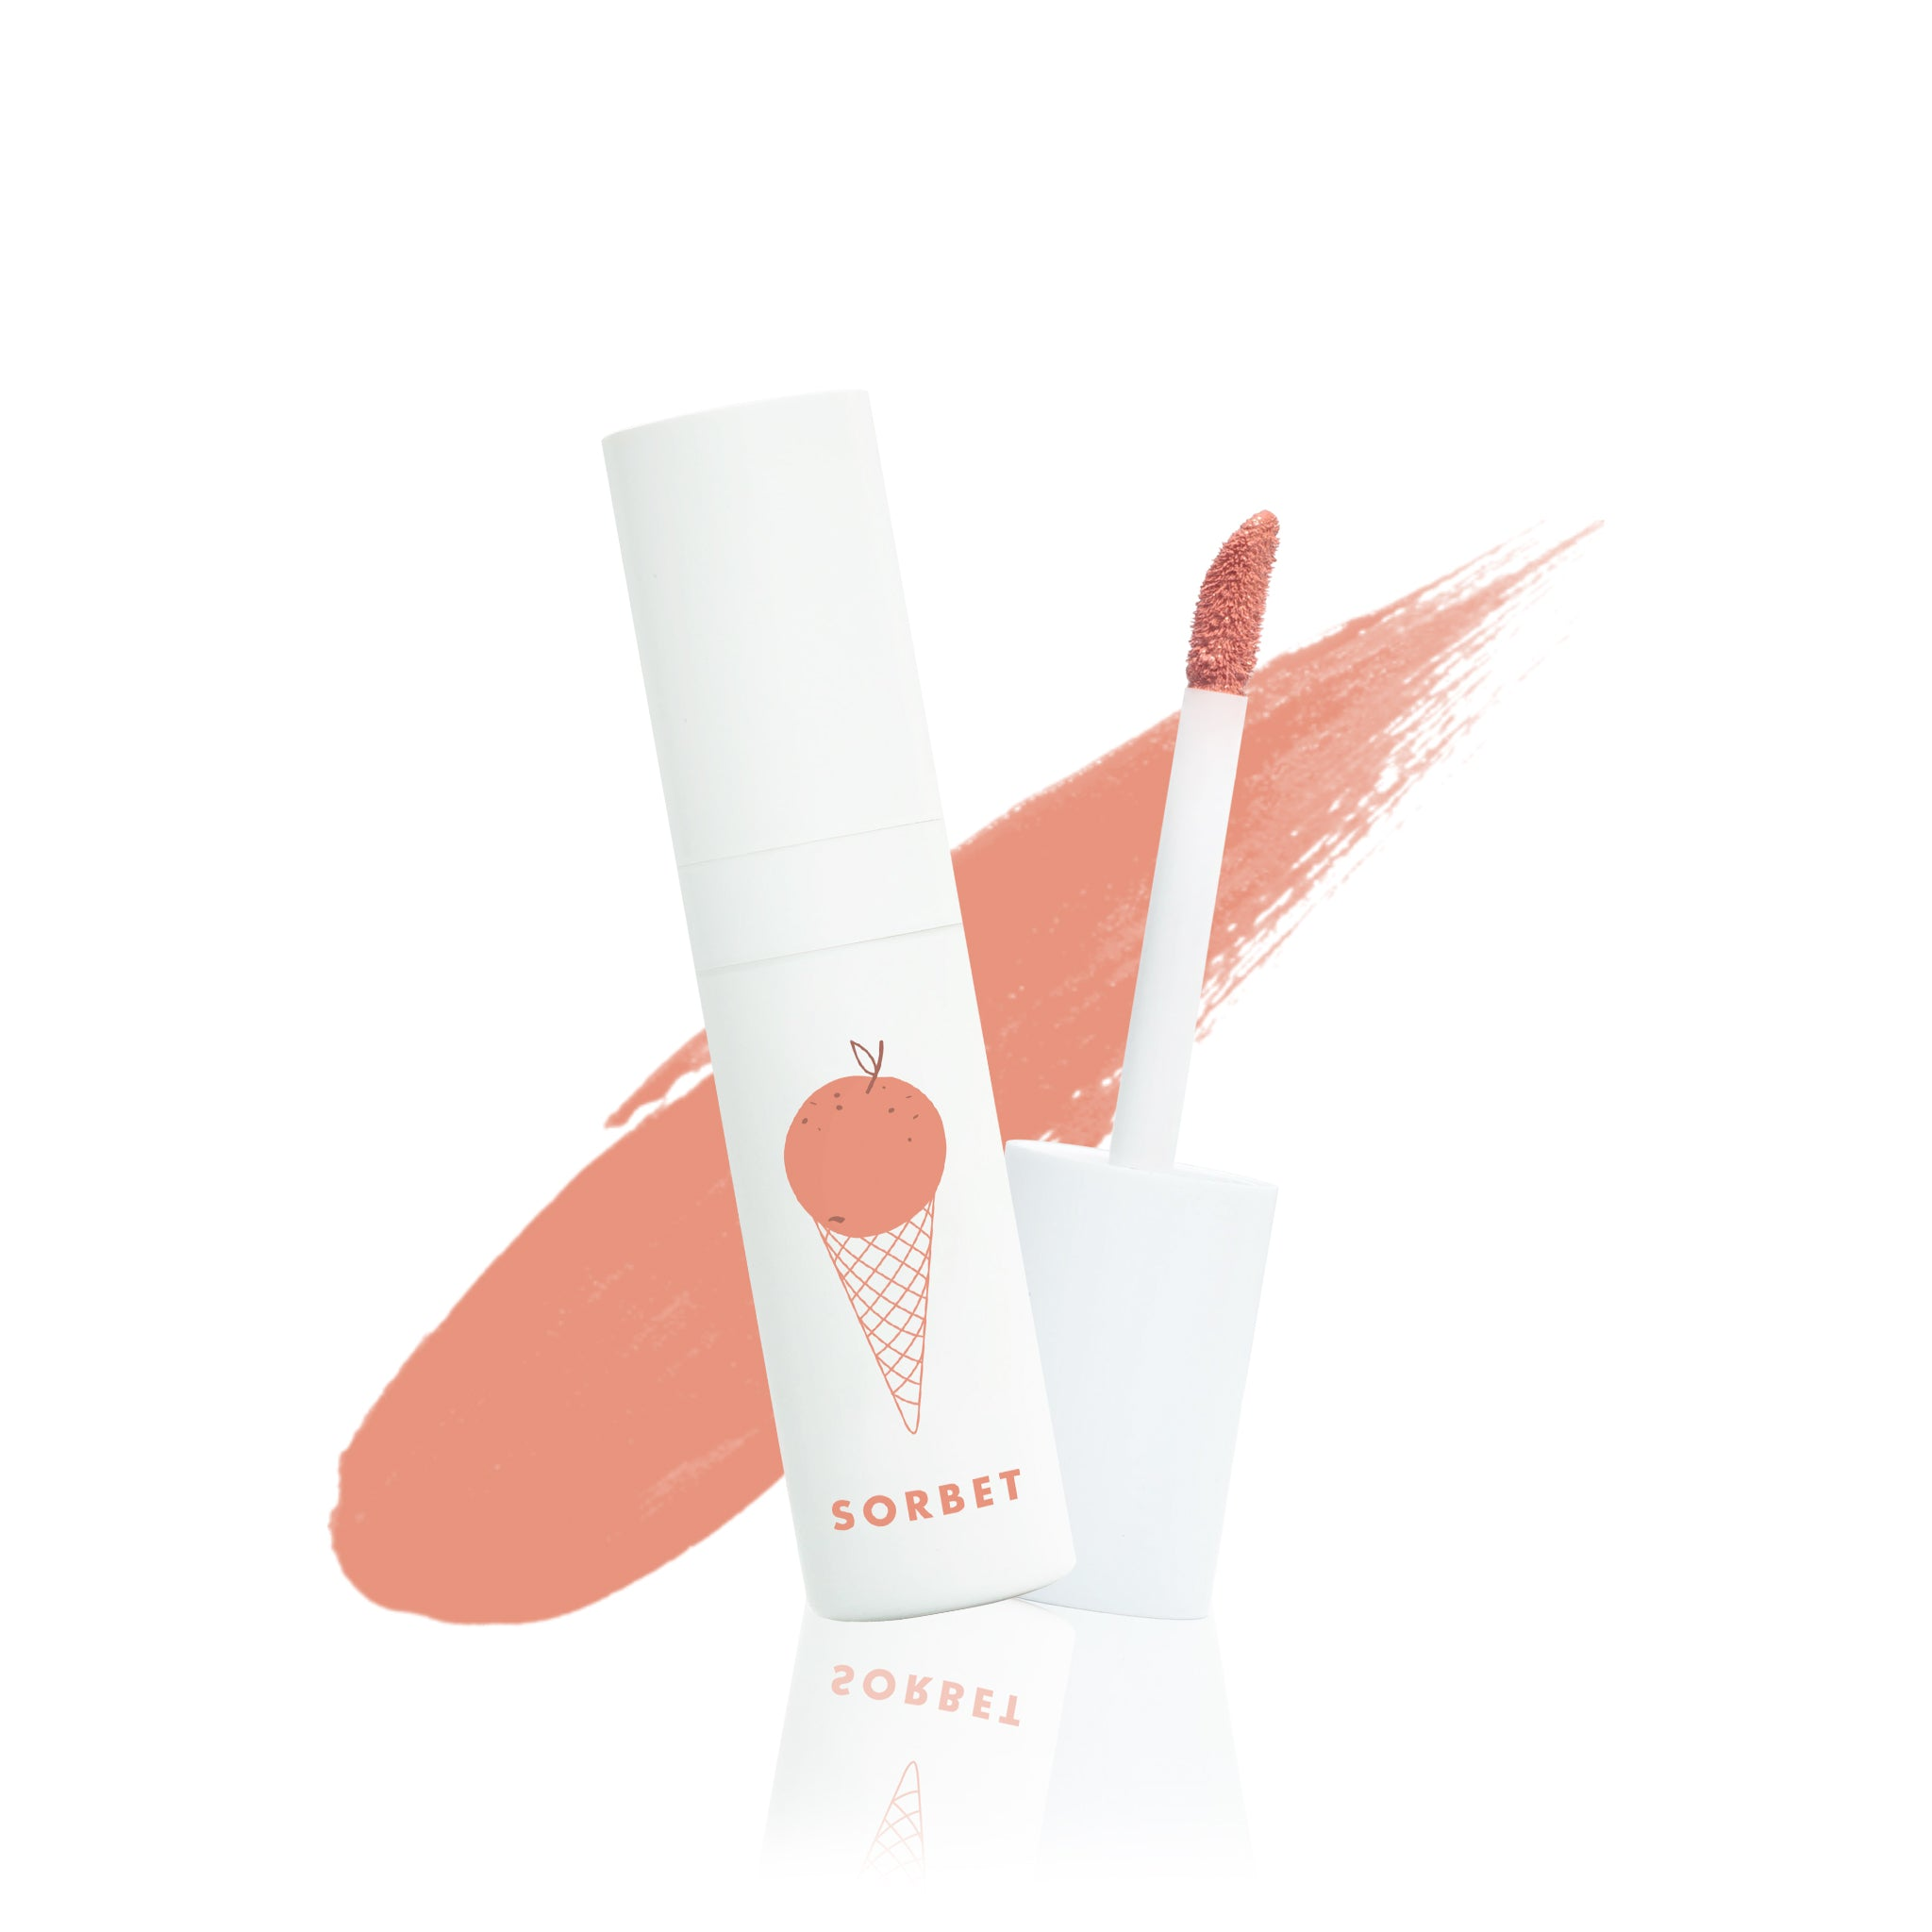 Rossa Beauty Lip Cheek Eye Sorbet – Creamy Peachy